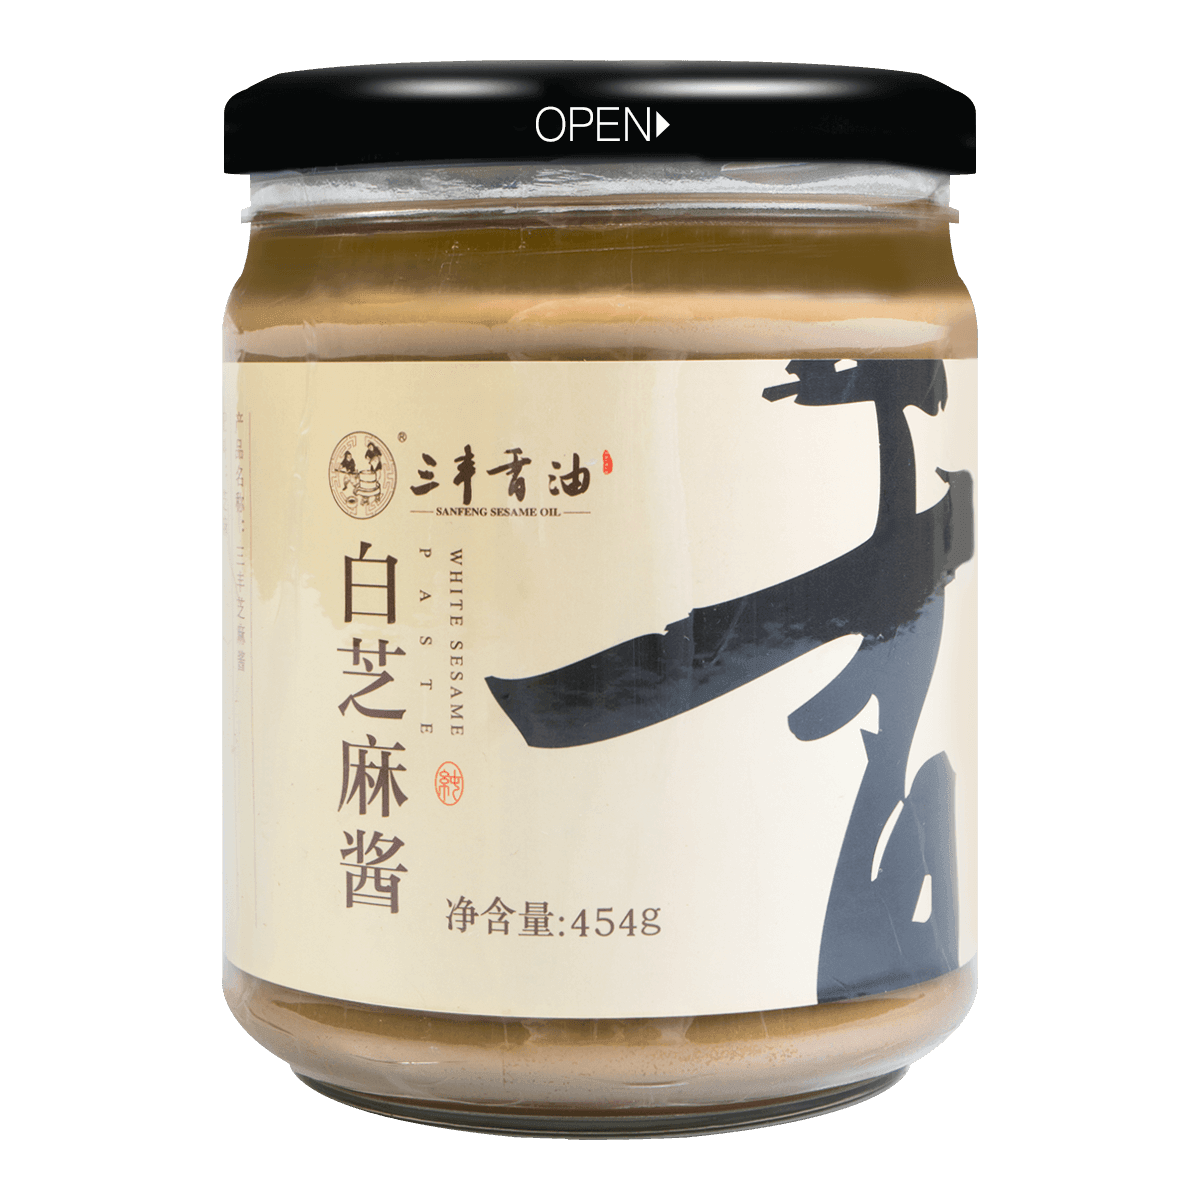 SANFENG SESAME OIL White Sesame Paste 454g